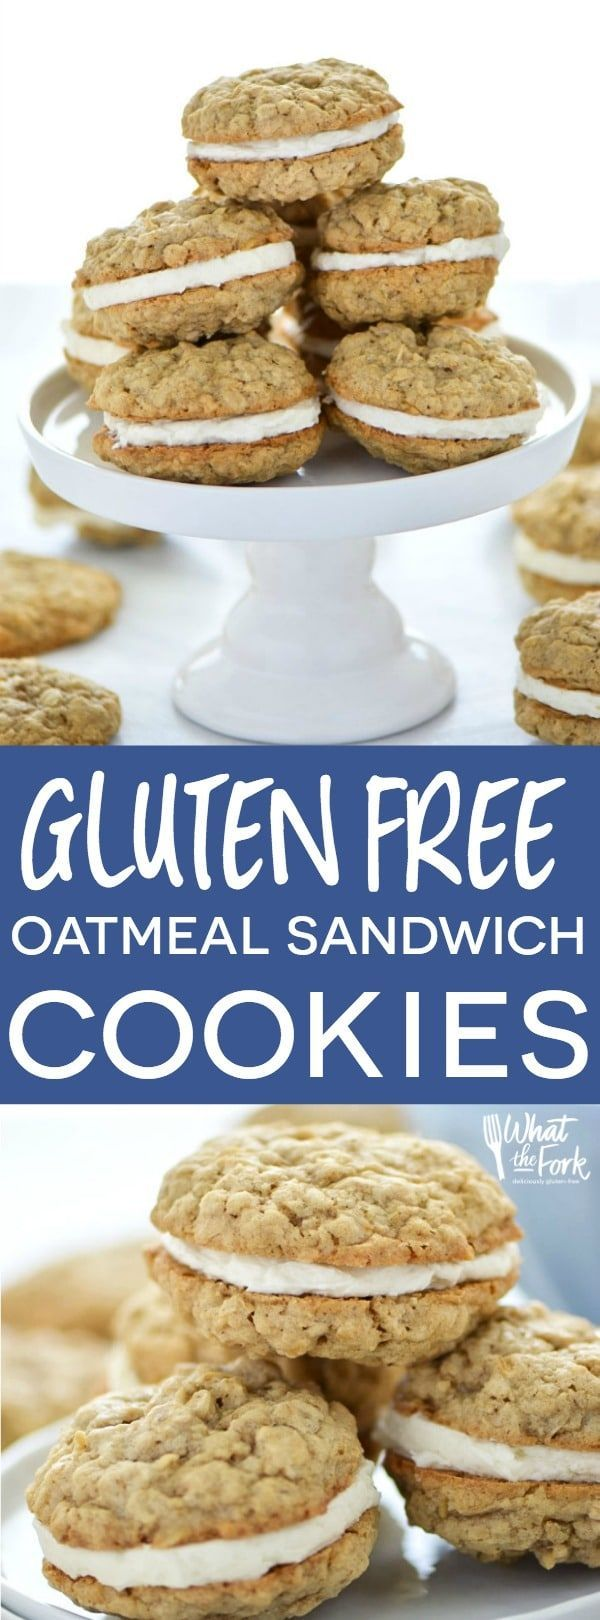 Gluten Free Oatmeal Sandwich Cookies are easy to make and super delicious! Recipe from @whattheforkblog | whattheforkfoodblog.com | Sponsored by @bobsredmill | gluten free desserts | gluten free cookie recipes | oatmeal cookies from scratch | vanilla butt